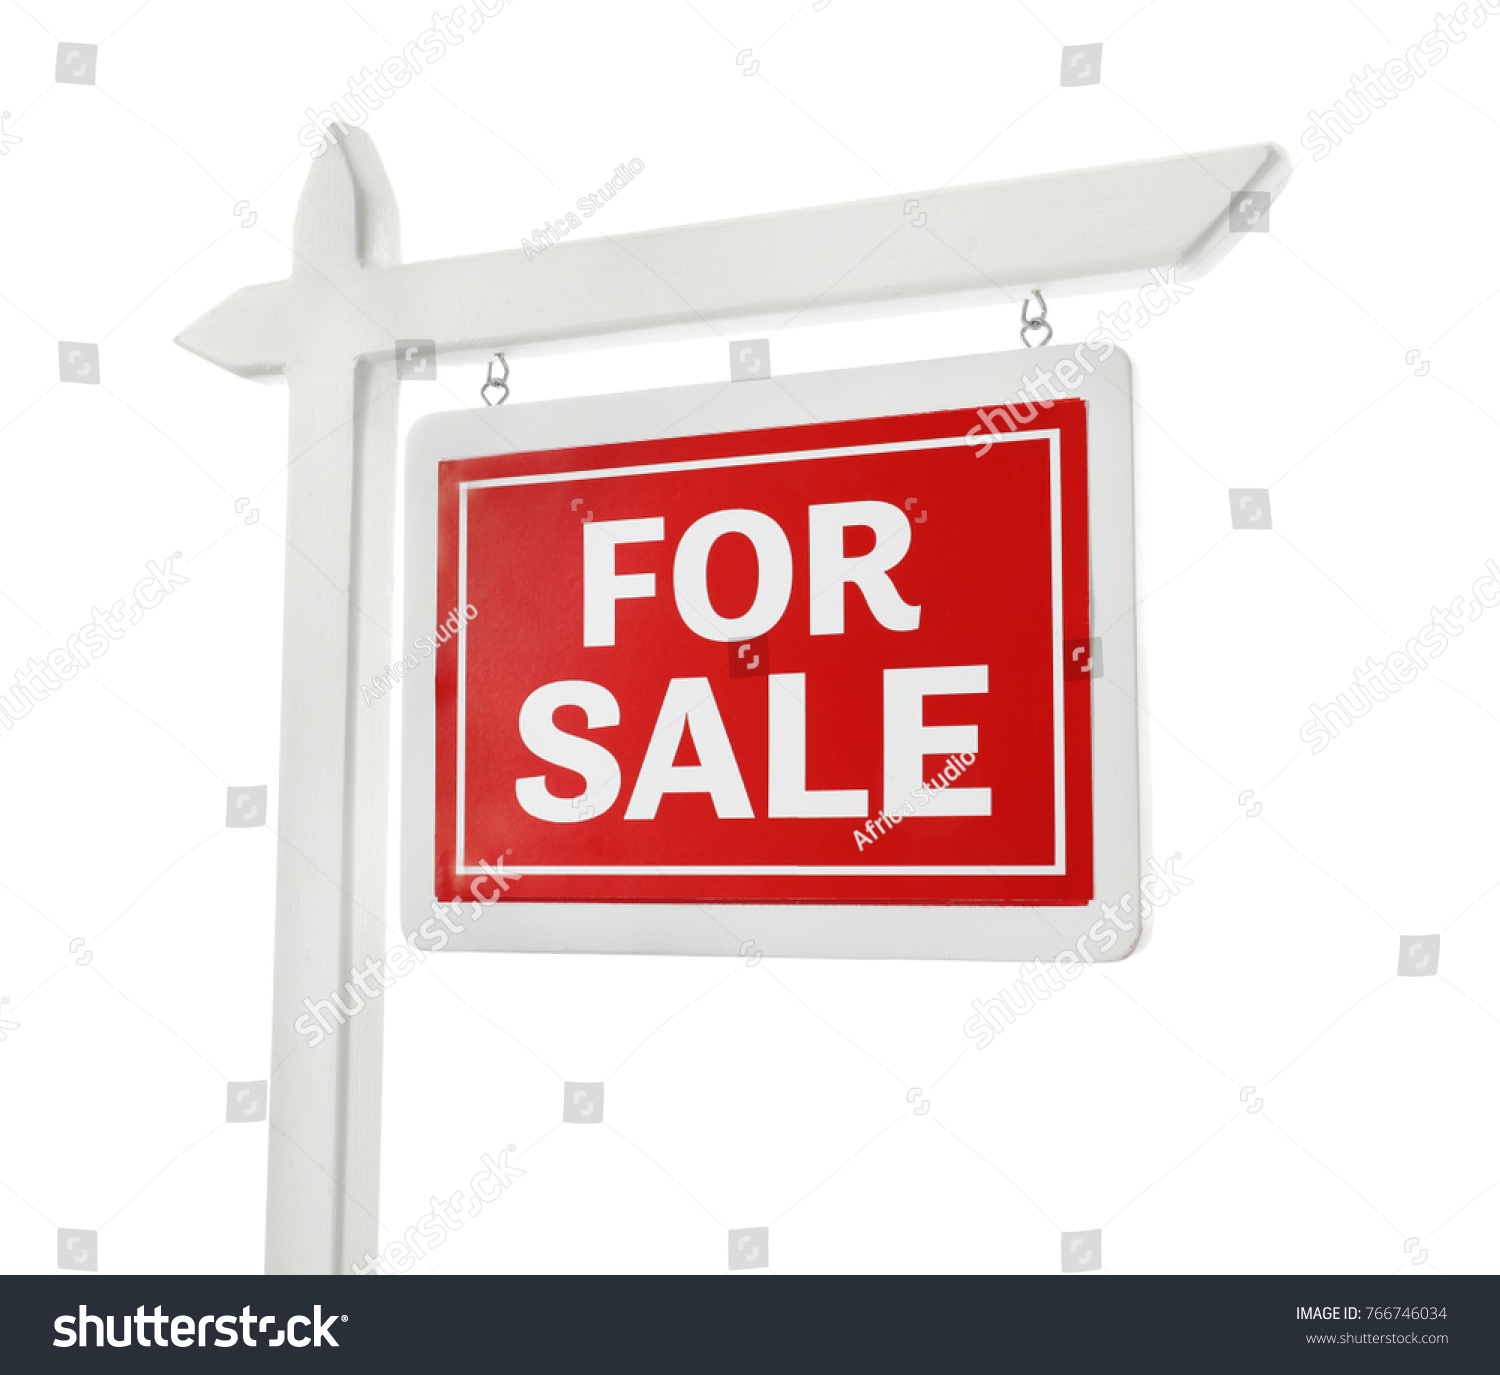 """For sale"" sign on white background #766746034"